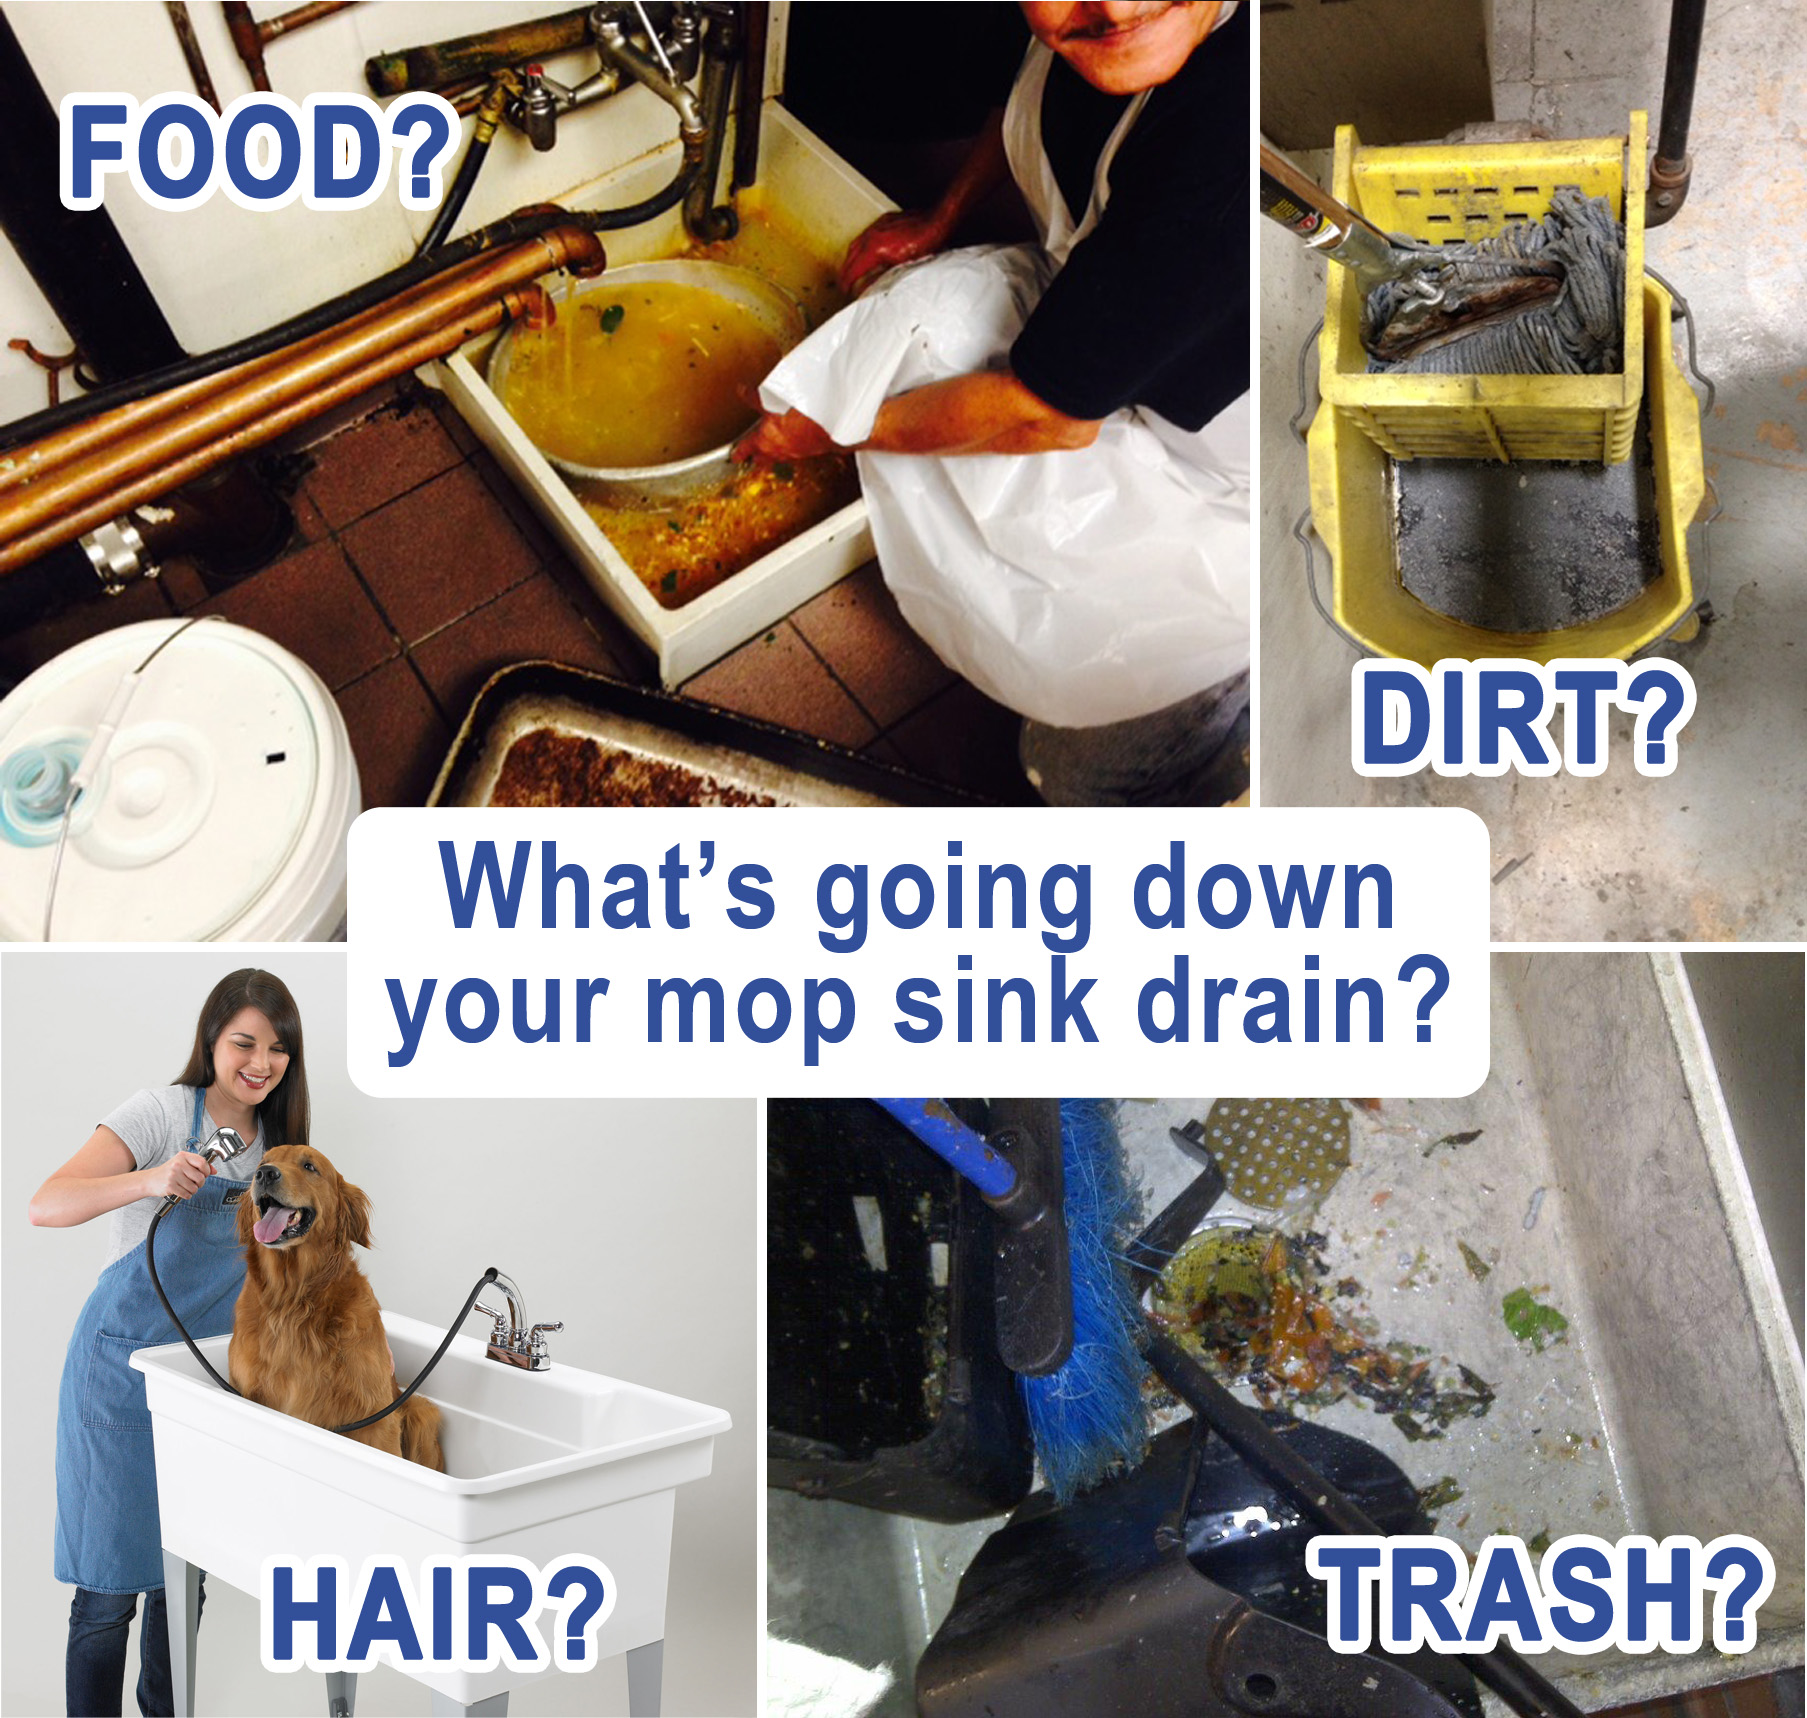 How To Deal With A Clogged Mop Basin Drain Net Technologies